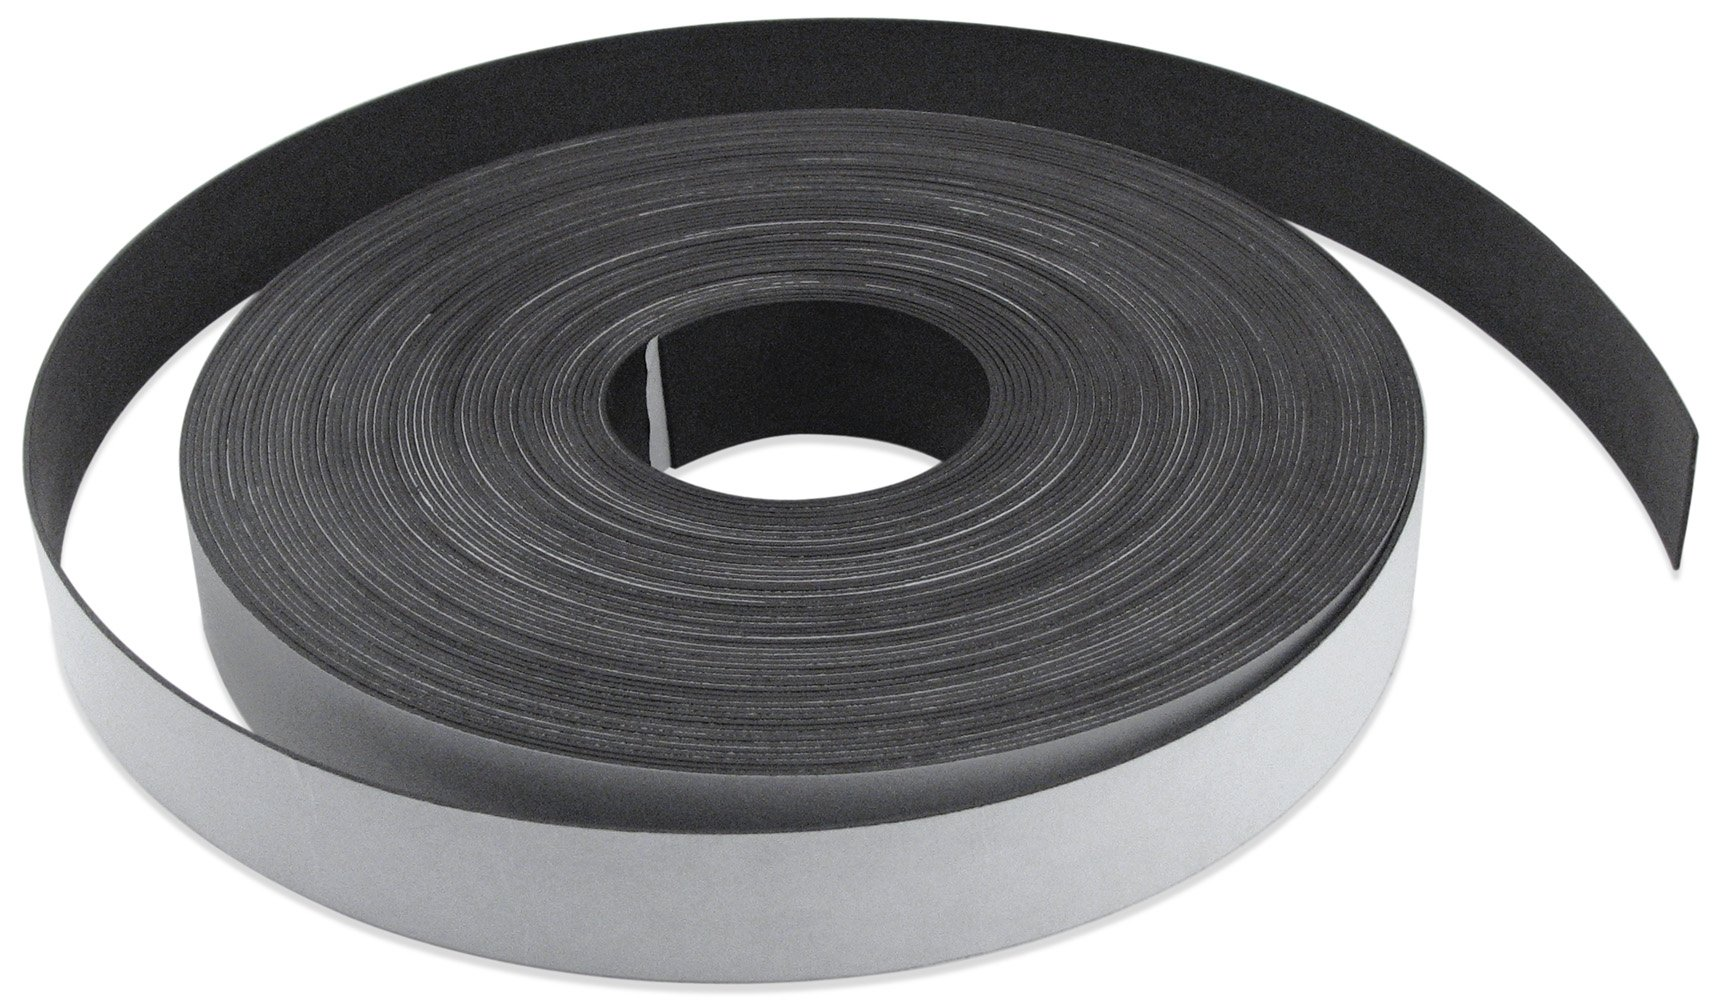 Flexible Magnet Strip with White Vinyl Coating, 1/32'' Thick, 3'' Height, 200 Feet, 1 Roll